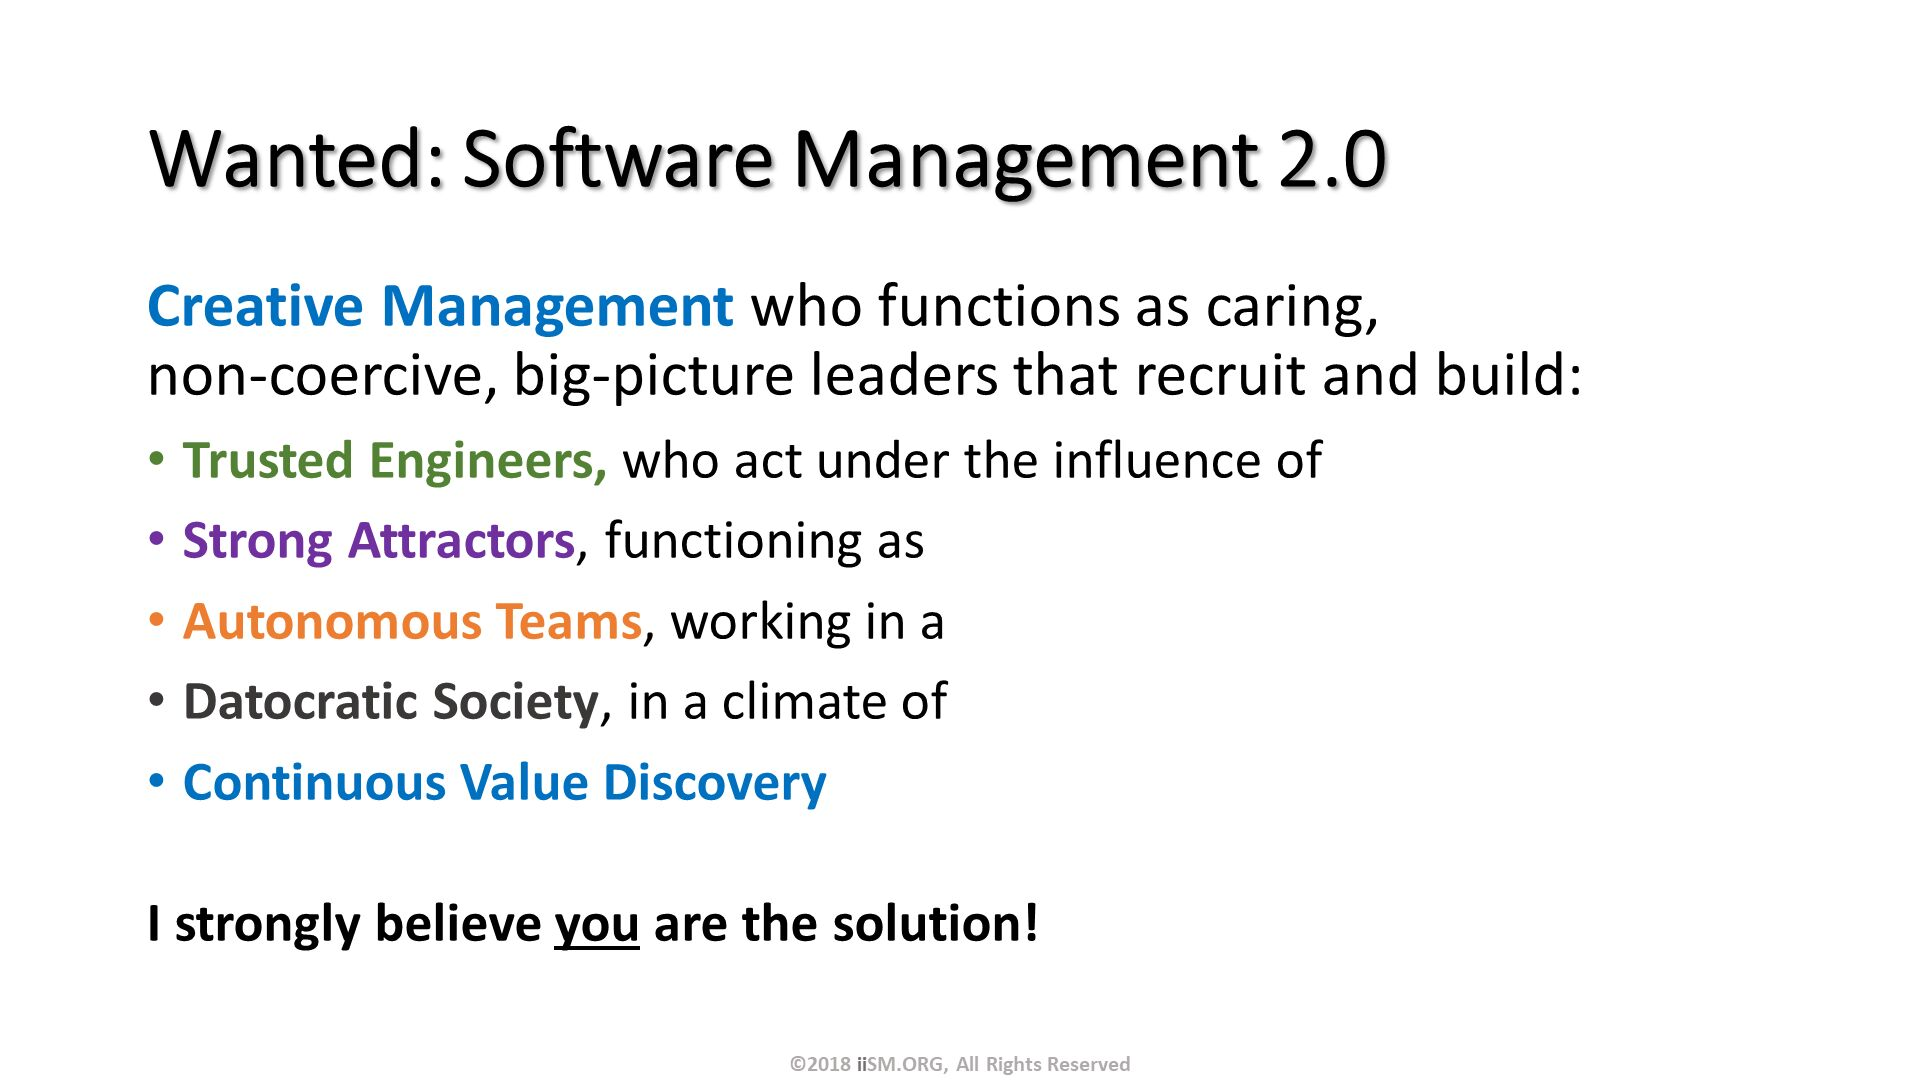 Wanted: Software Management 2.0. Creative Management who functions as caring, non-coercive, big-picture leaders that recruit and build: Trusted Engineers, who act under the influence of Strong Attractors, functioning as  Autonomous Teams, working in a Datocratic Society, in a climate of Continuous Value Discovery I strongly believe you are the solution!. ©2018 iiSM.ORG, All Rights Reserved.